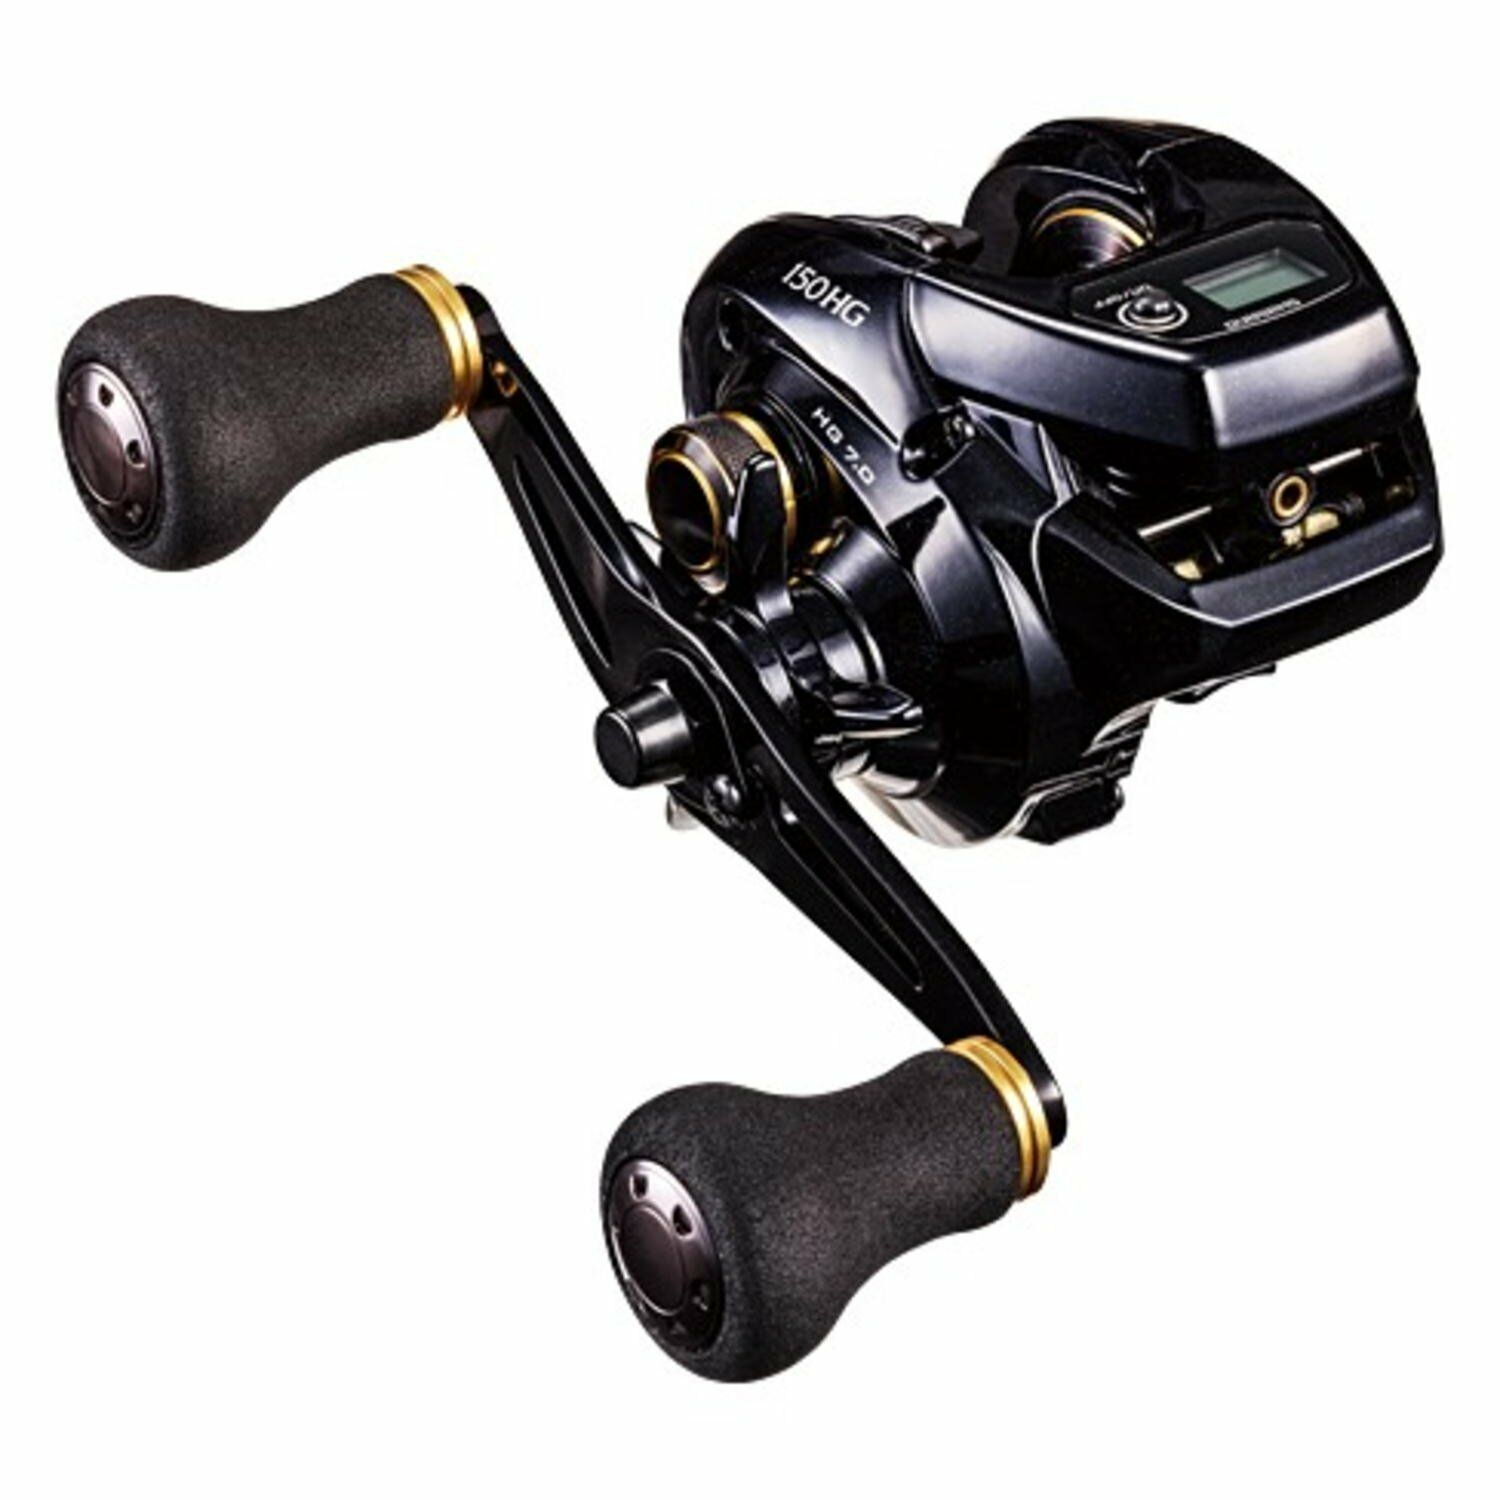 Shimano Baitcasting Reel 16 Grappler CT 150HG right from Japan[Brand New in Box]